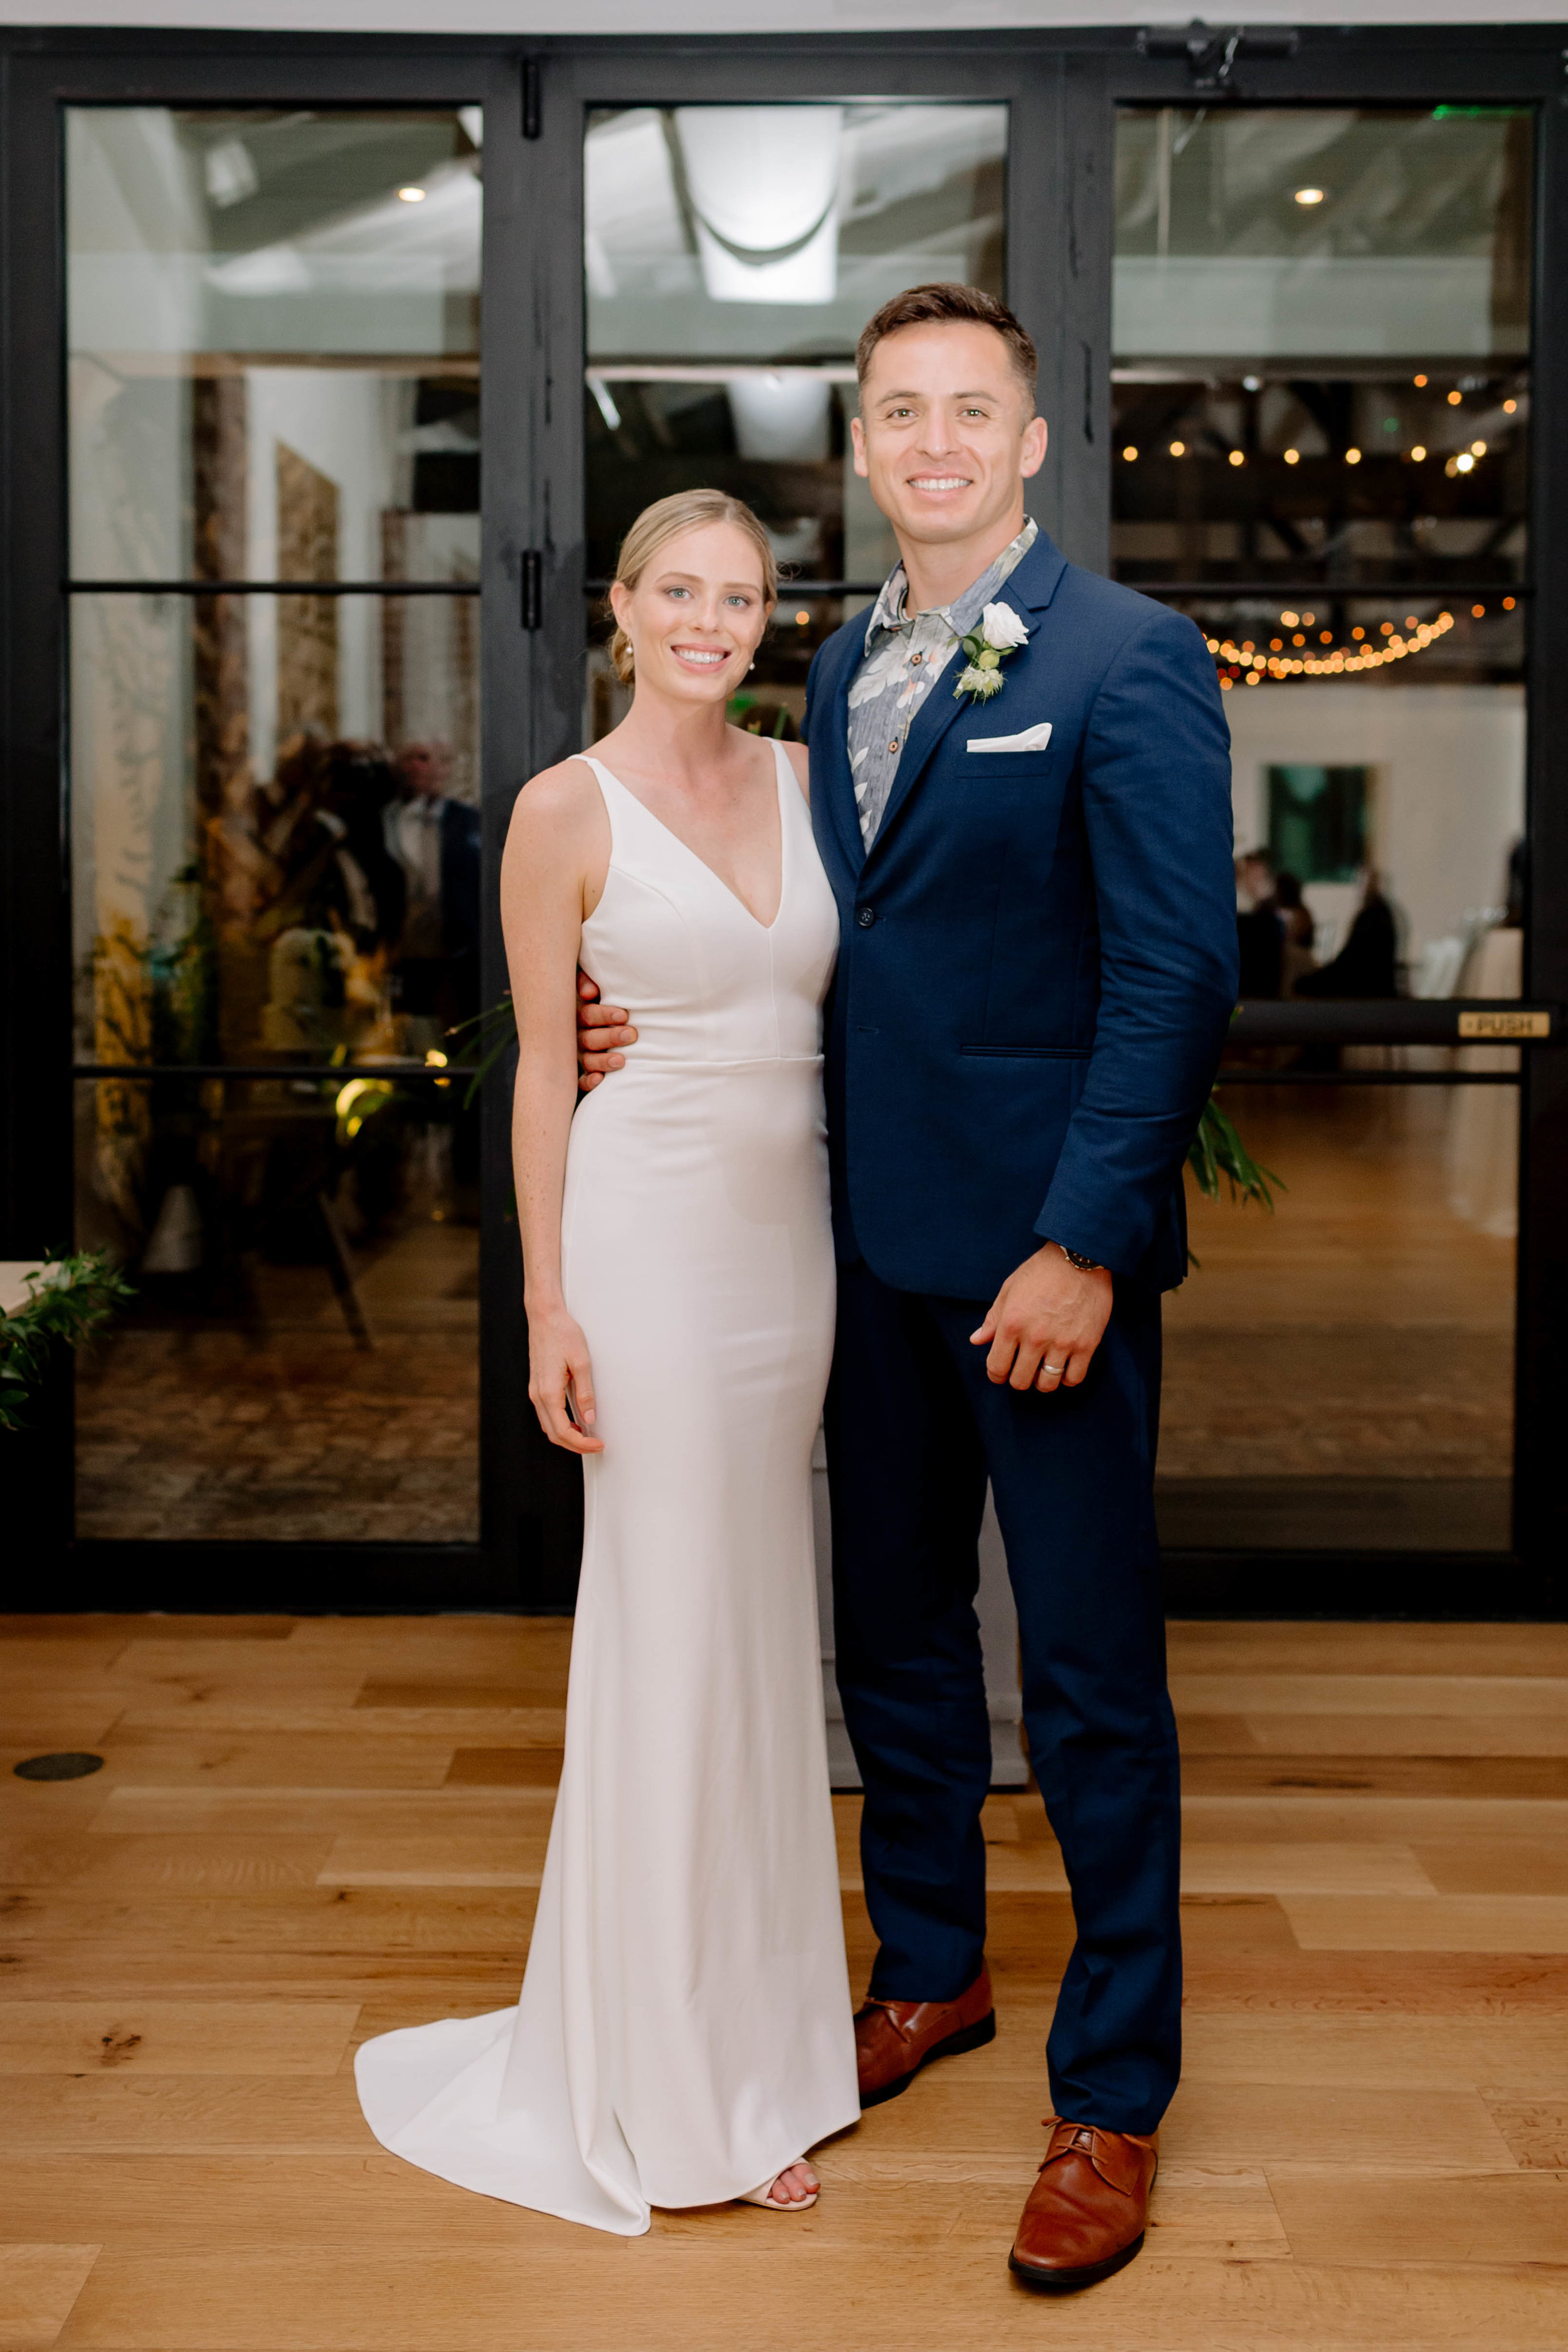 090618 Holly Sweat + Carlos - Kate Timbers Photography LH 5700.jpg